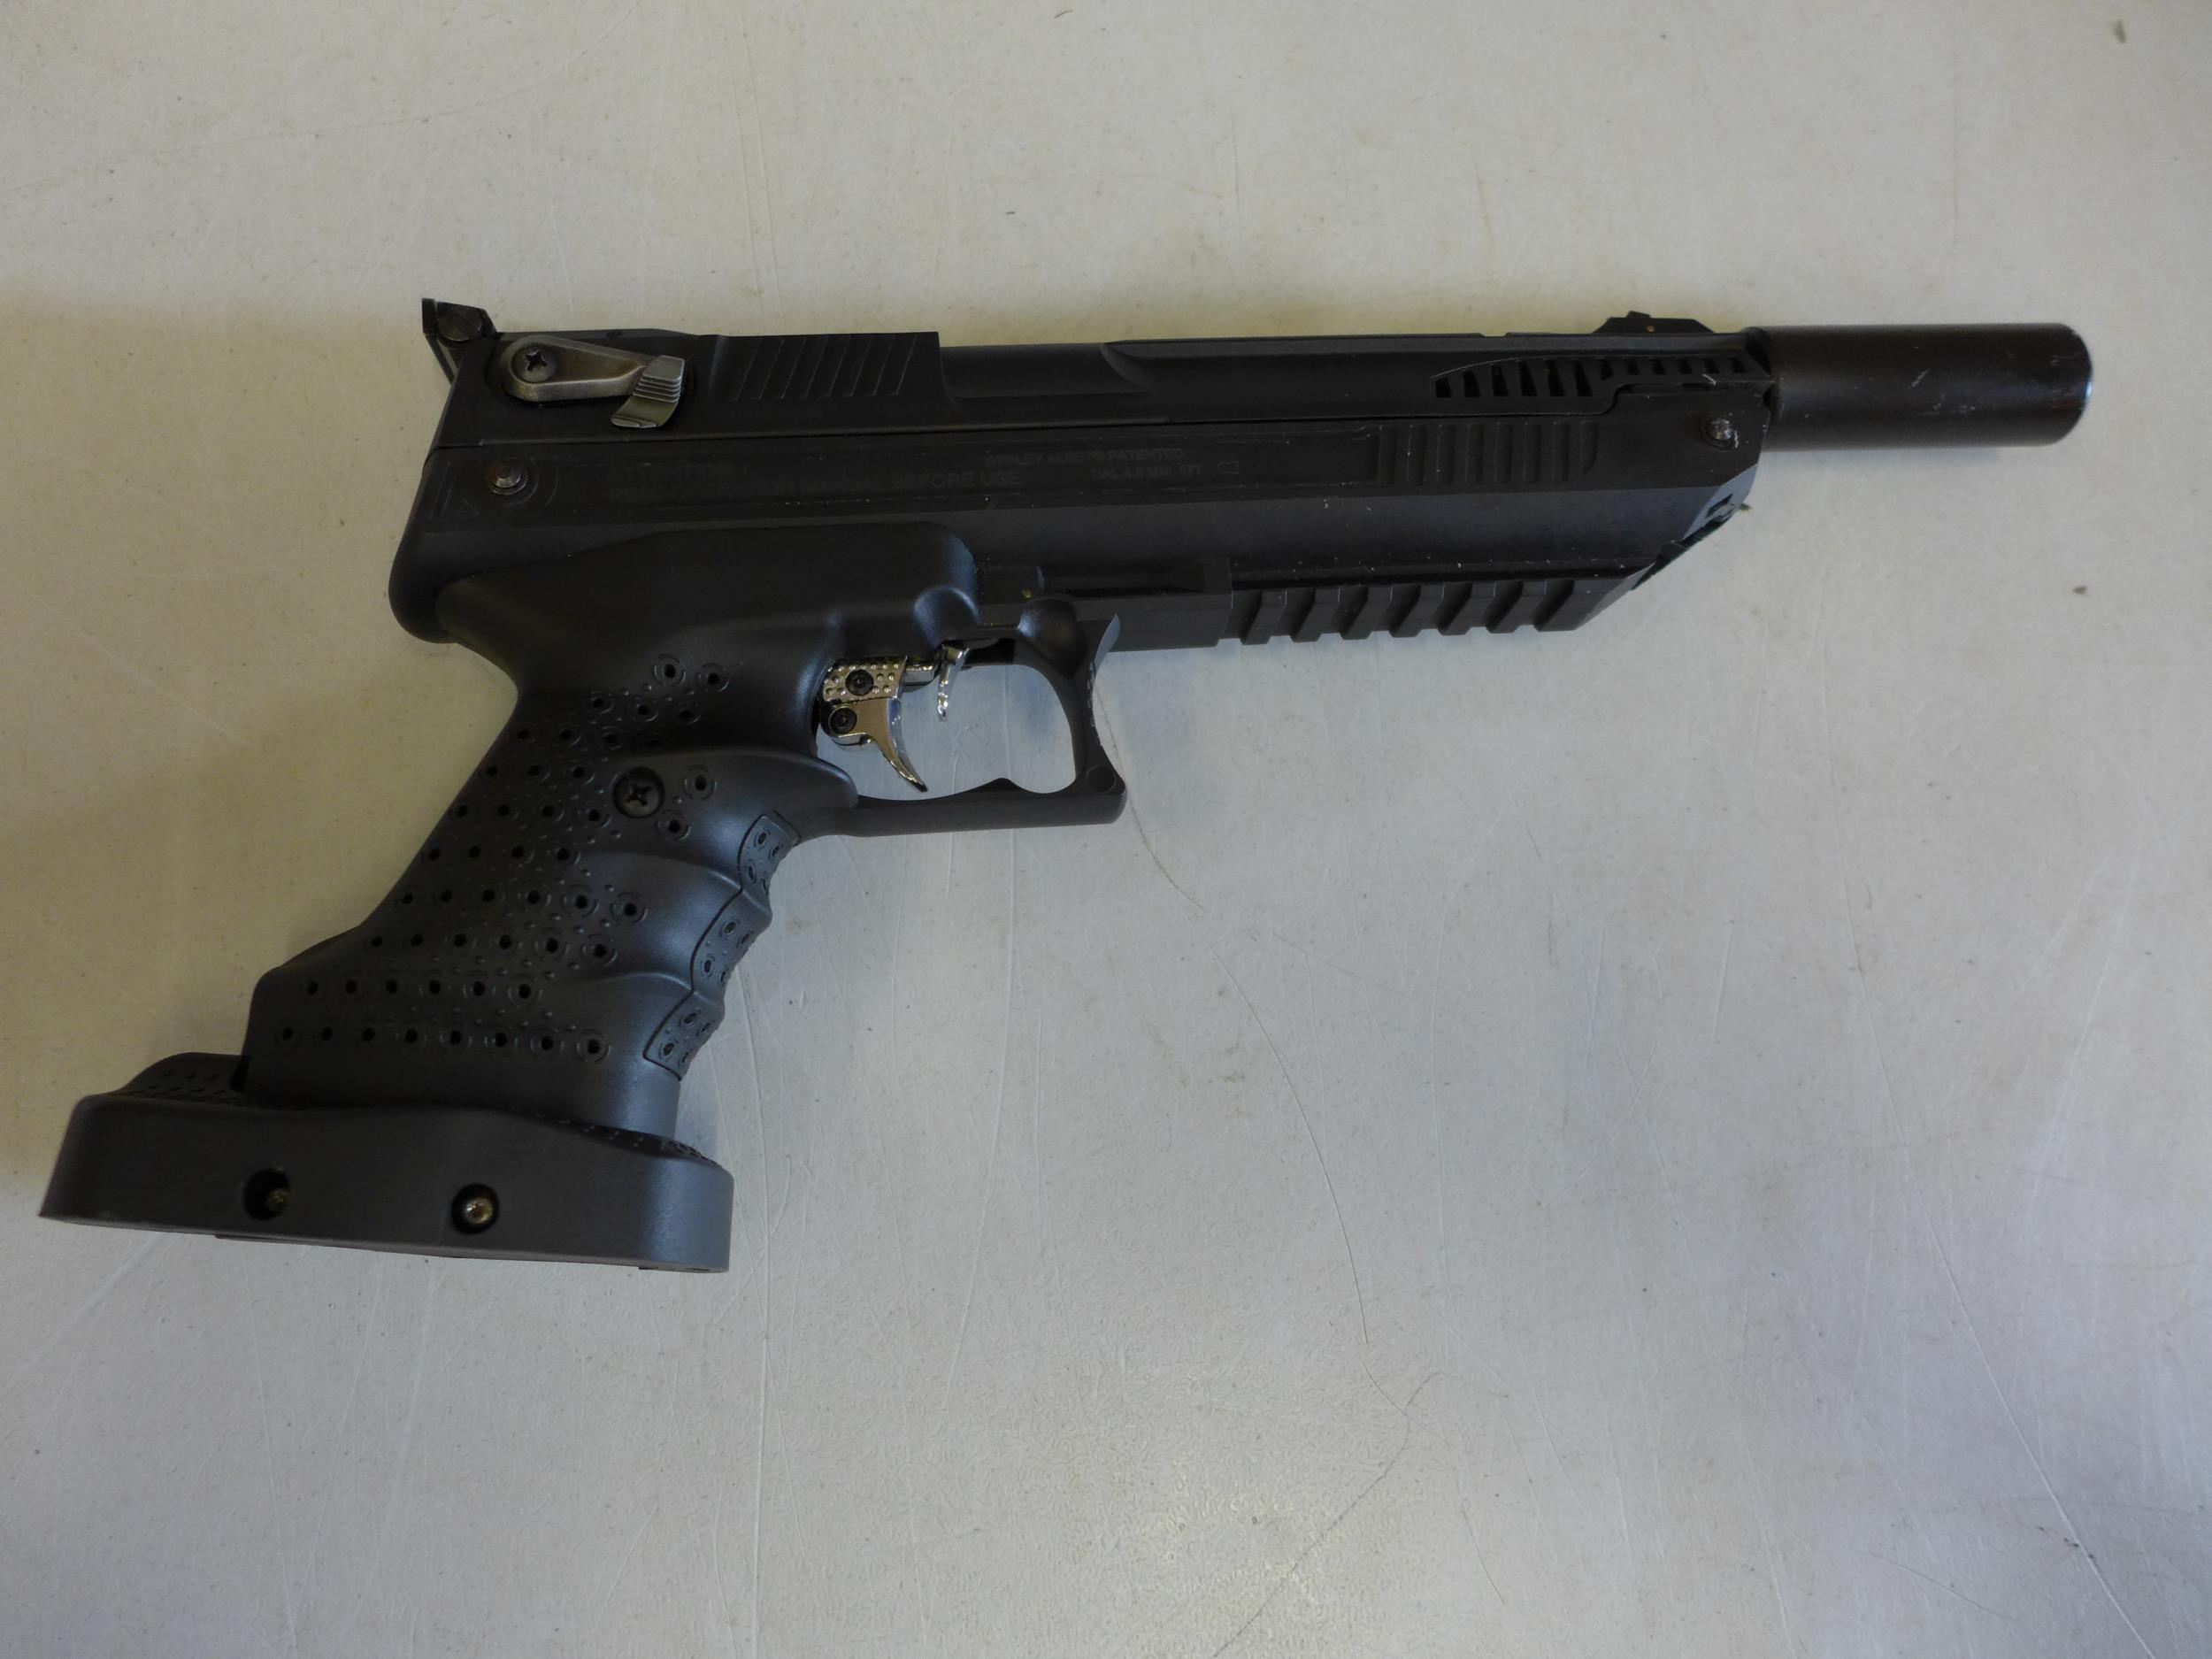 A CASED WEBLEY ALECT .177 CALIBRE AIR PISTOL, WITH SCREW ON SILENCER AND A TIN OF PELLETS - Image 3 of 4